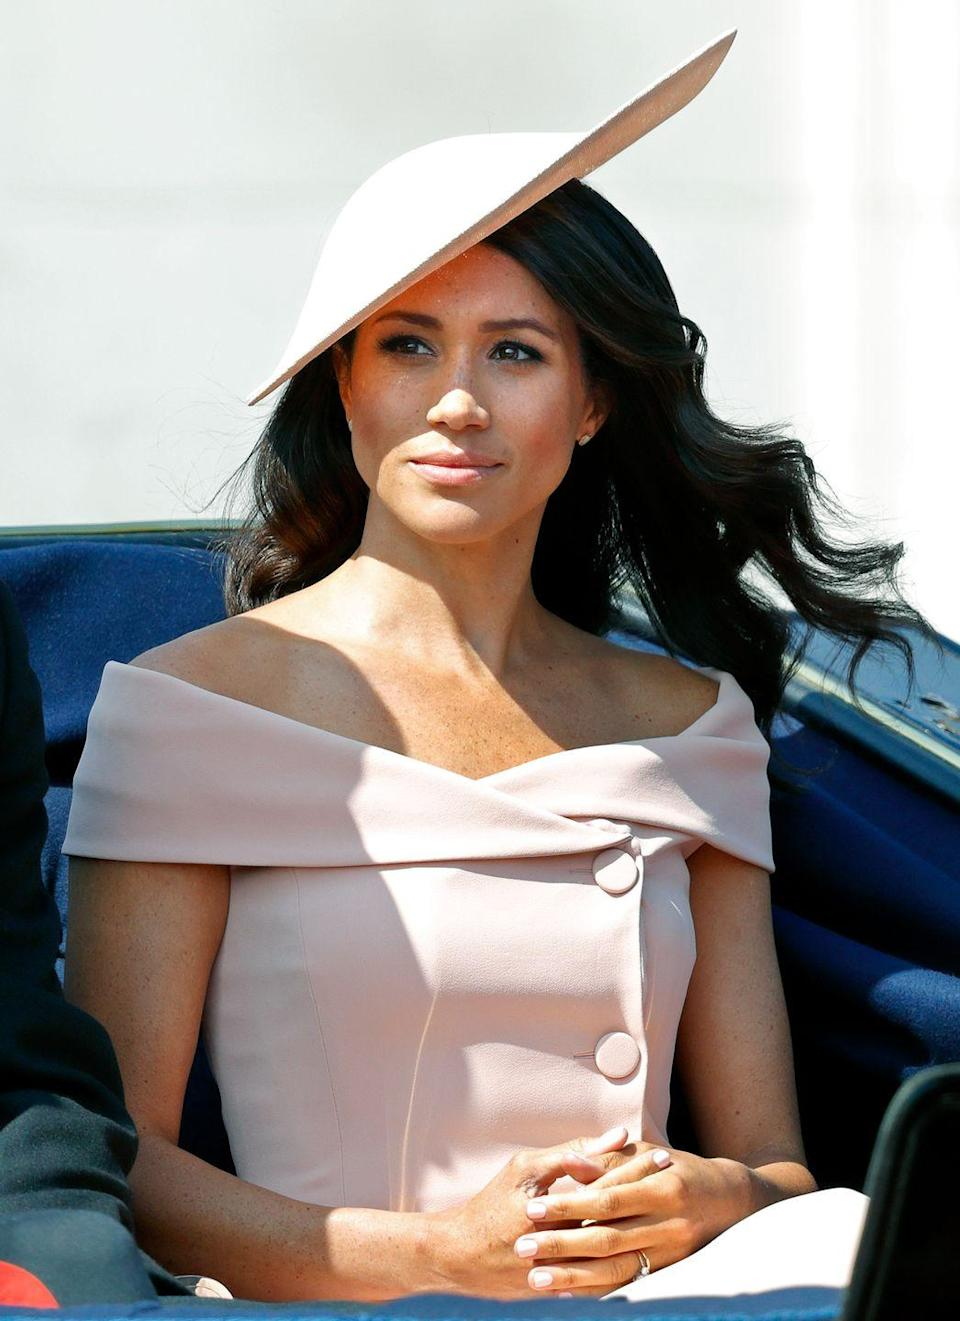 """<p>When the Duchess of Sussex joined the royal family for the first time on the balcony of Buckingham Palace for the annual Trooping of the Colour, not everyone was thrilled with her blush Carolina Herrera ensemble. Many <a href=""""https://people.com/royals/meghan-markle-trooping-the-colour-dress/"""" rel=""""nofollow noopener"""" target=""""_blank"""" data-ylk=""""slk:etiquette experts thought"""" class=""""link rapid-noclick-resp"""">etiquette experts thought</a> the royal should have chosen a more modest neckline for the traditional ceremony. </p>"""